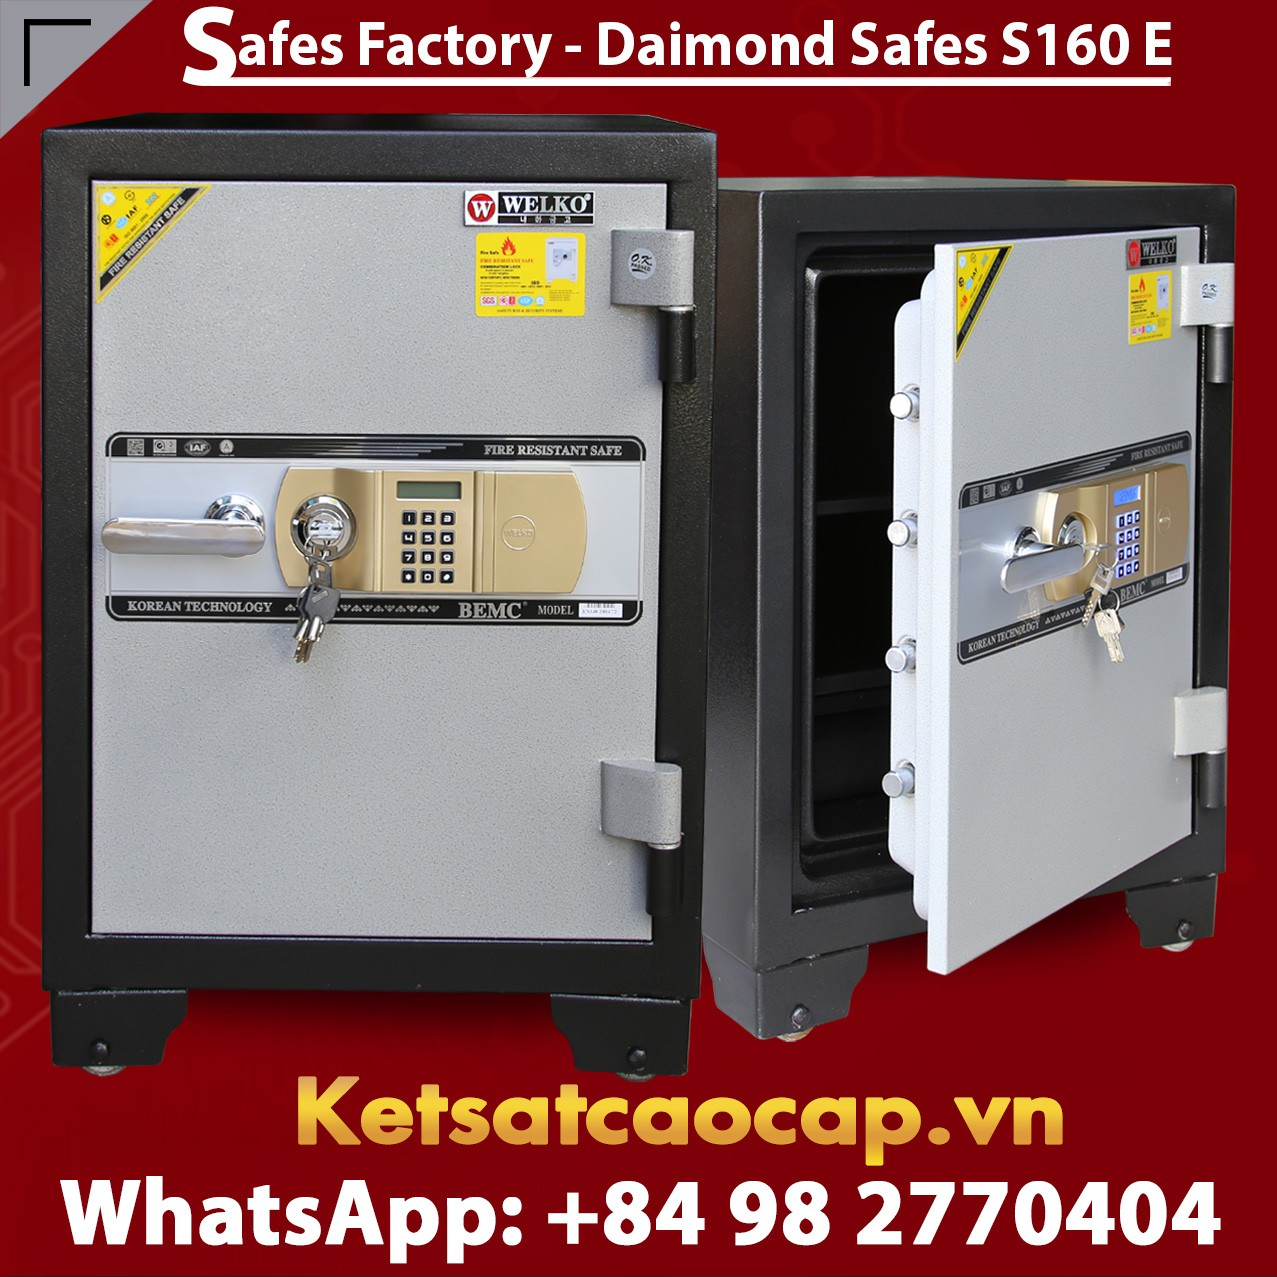 OFFICE SAFE S160 E